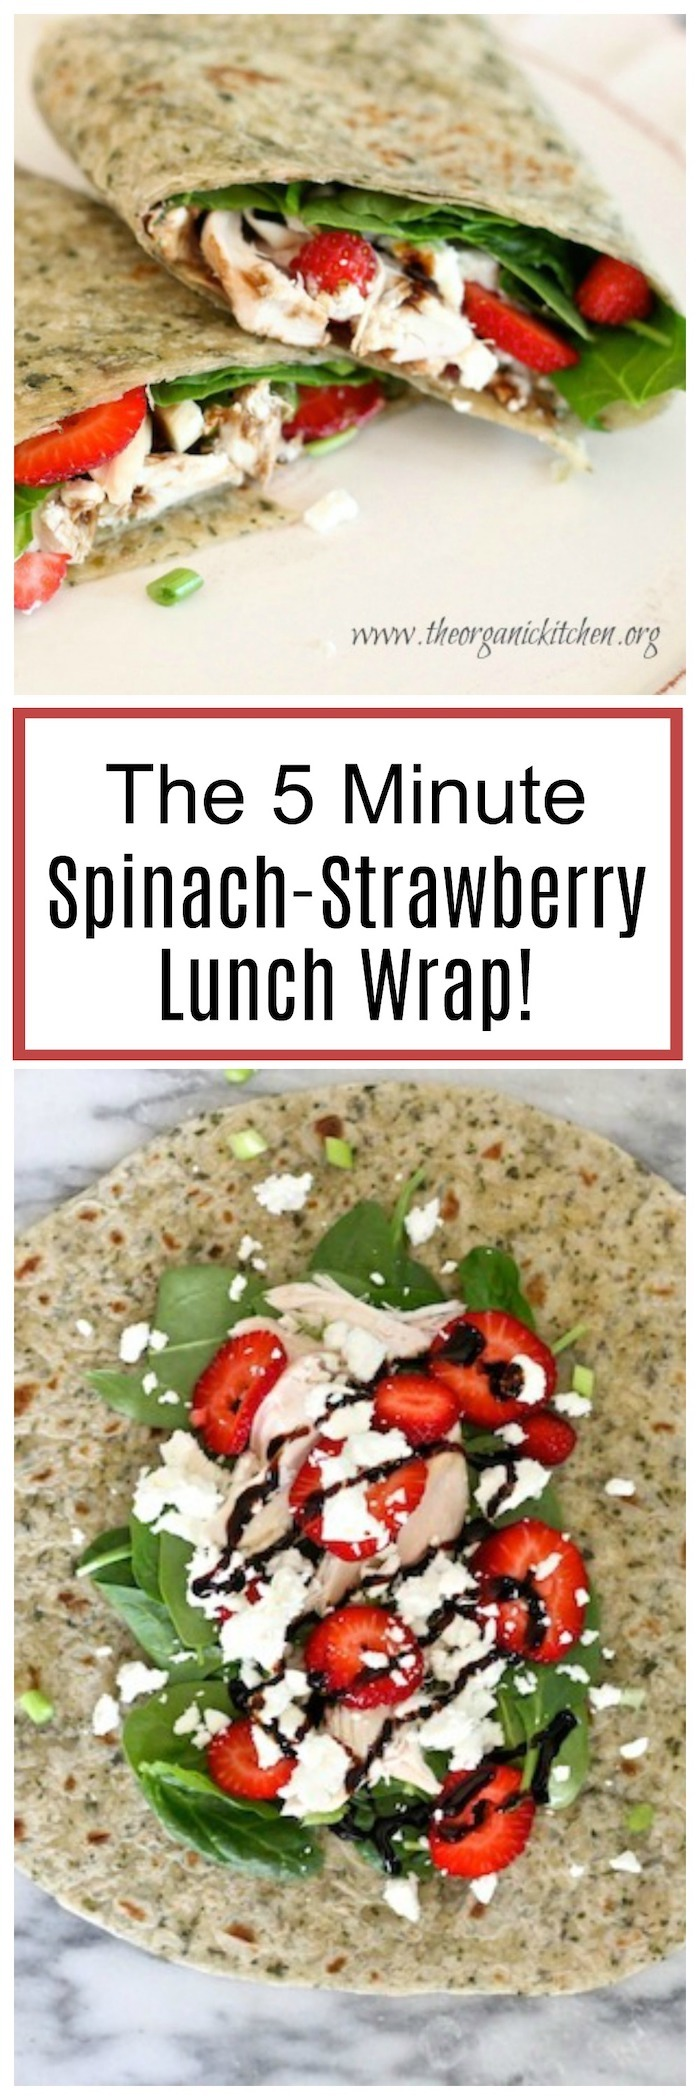 Spinach Strawberry Salad Wrap on white plate